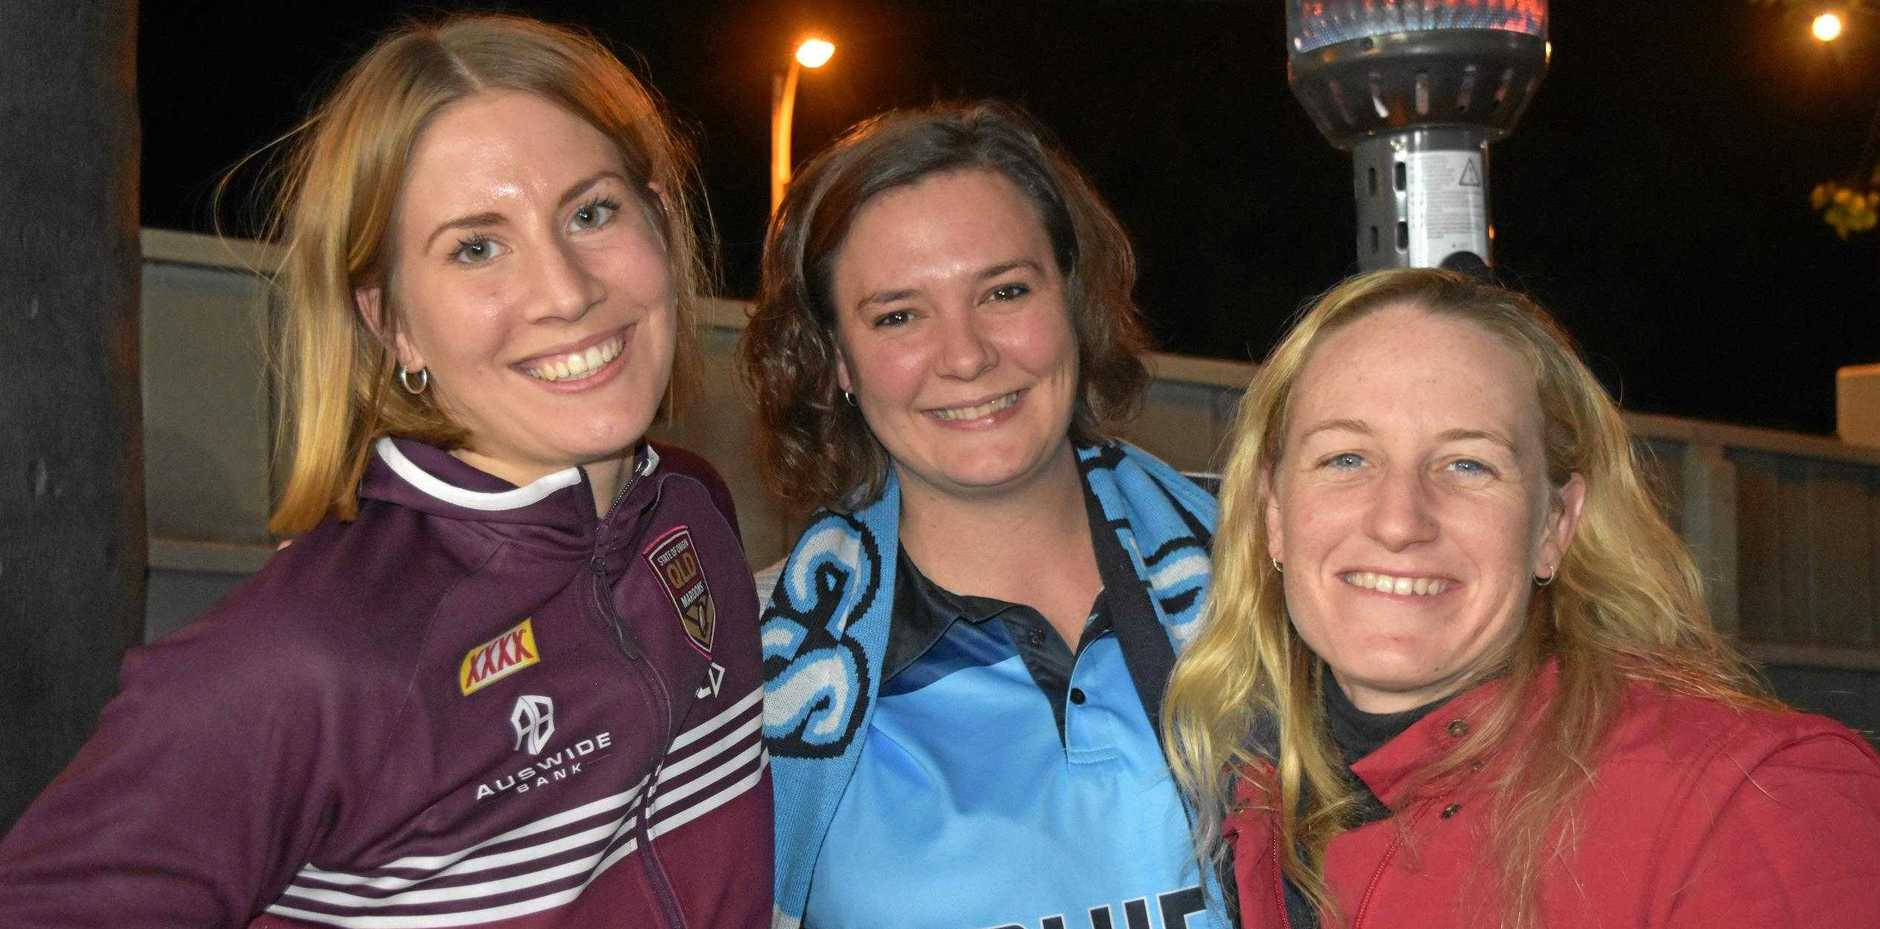 FRIENDLY BATTLE: Lidewij Koene, Theresa Hunter and Kat Oliver didn't let the tough competition come between them as they headed to the Criterion to watch Origin III.